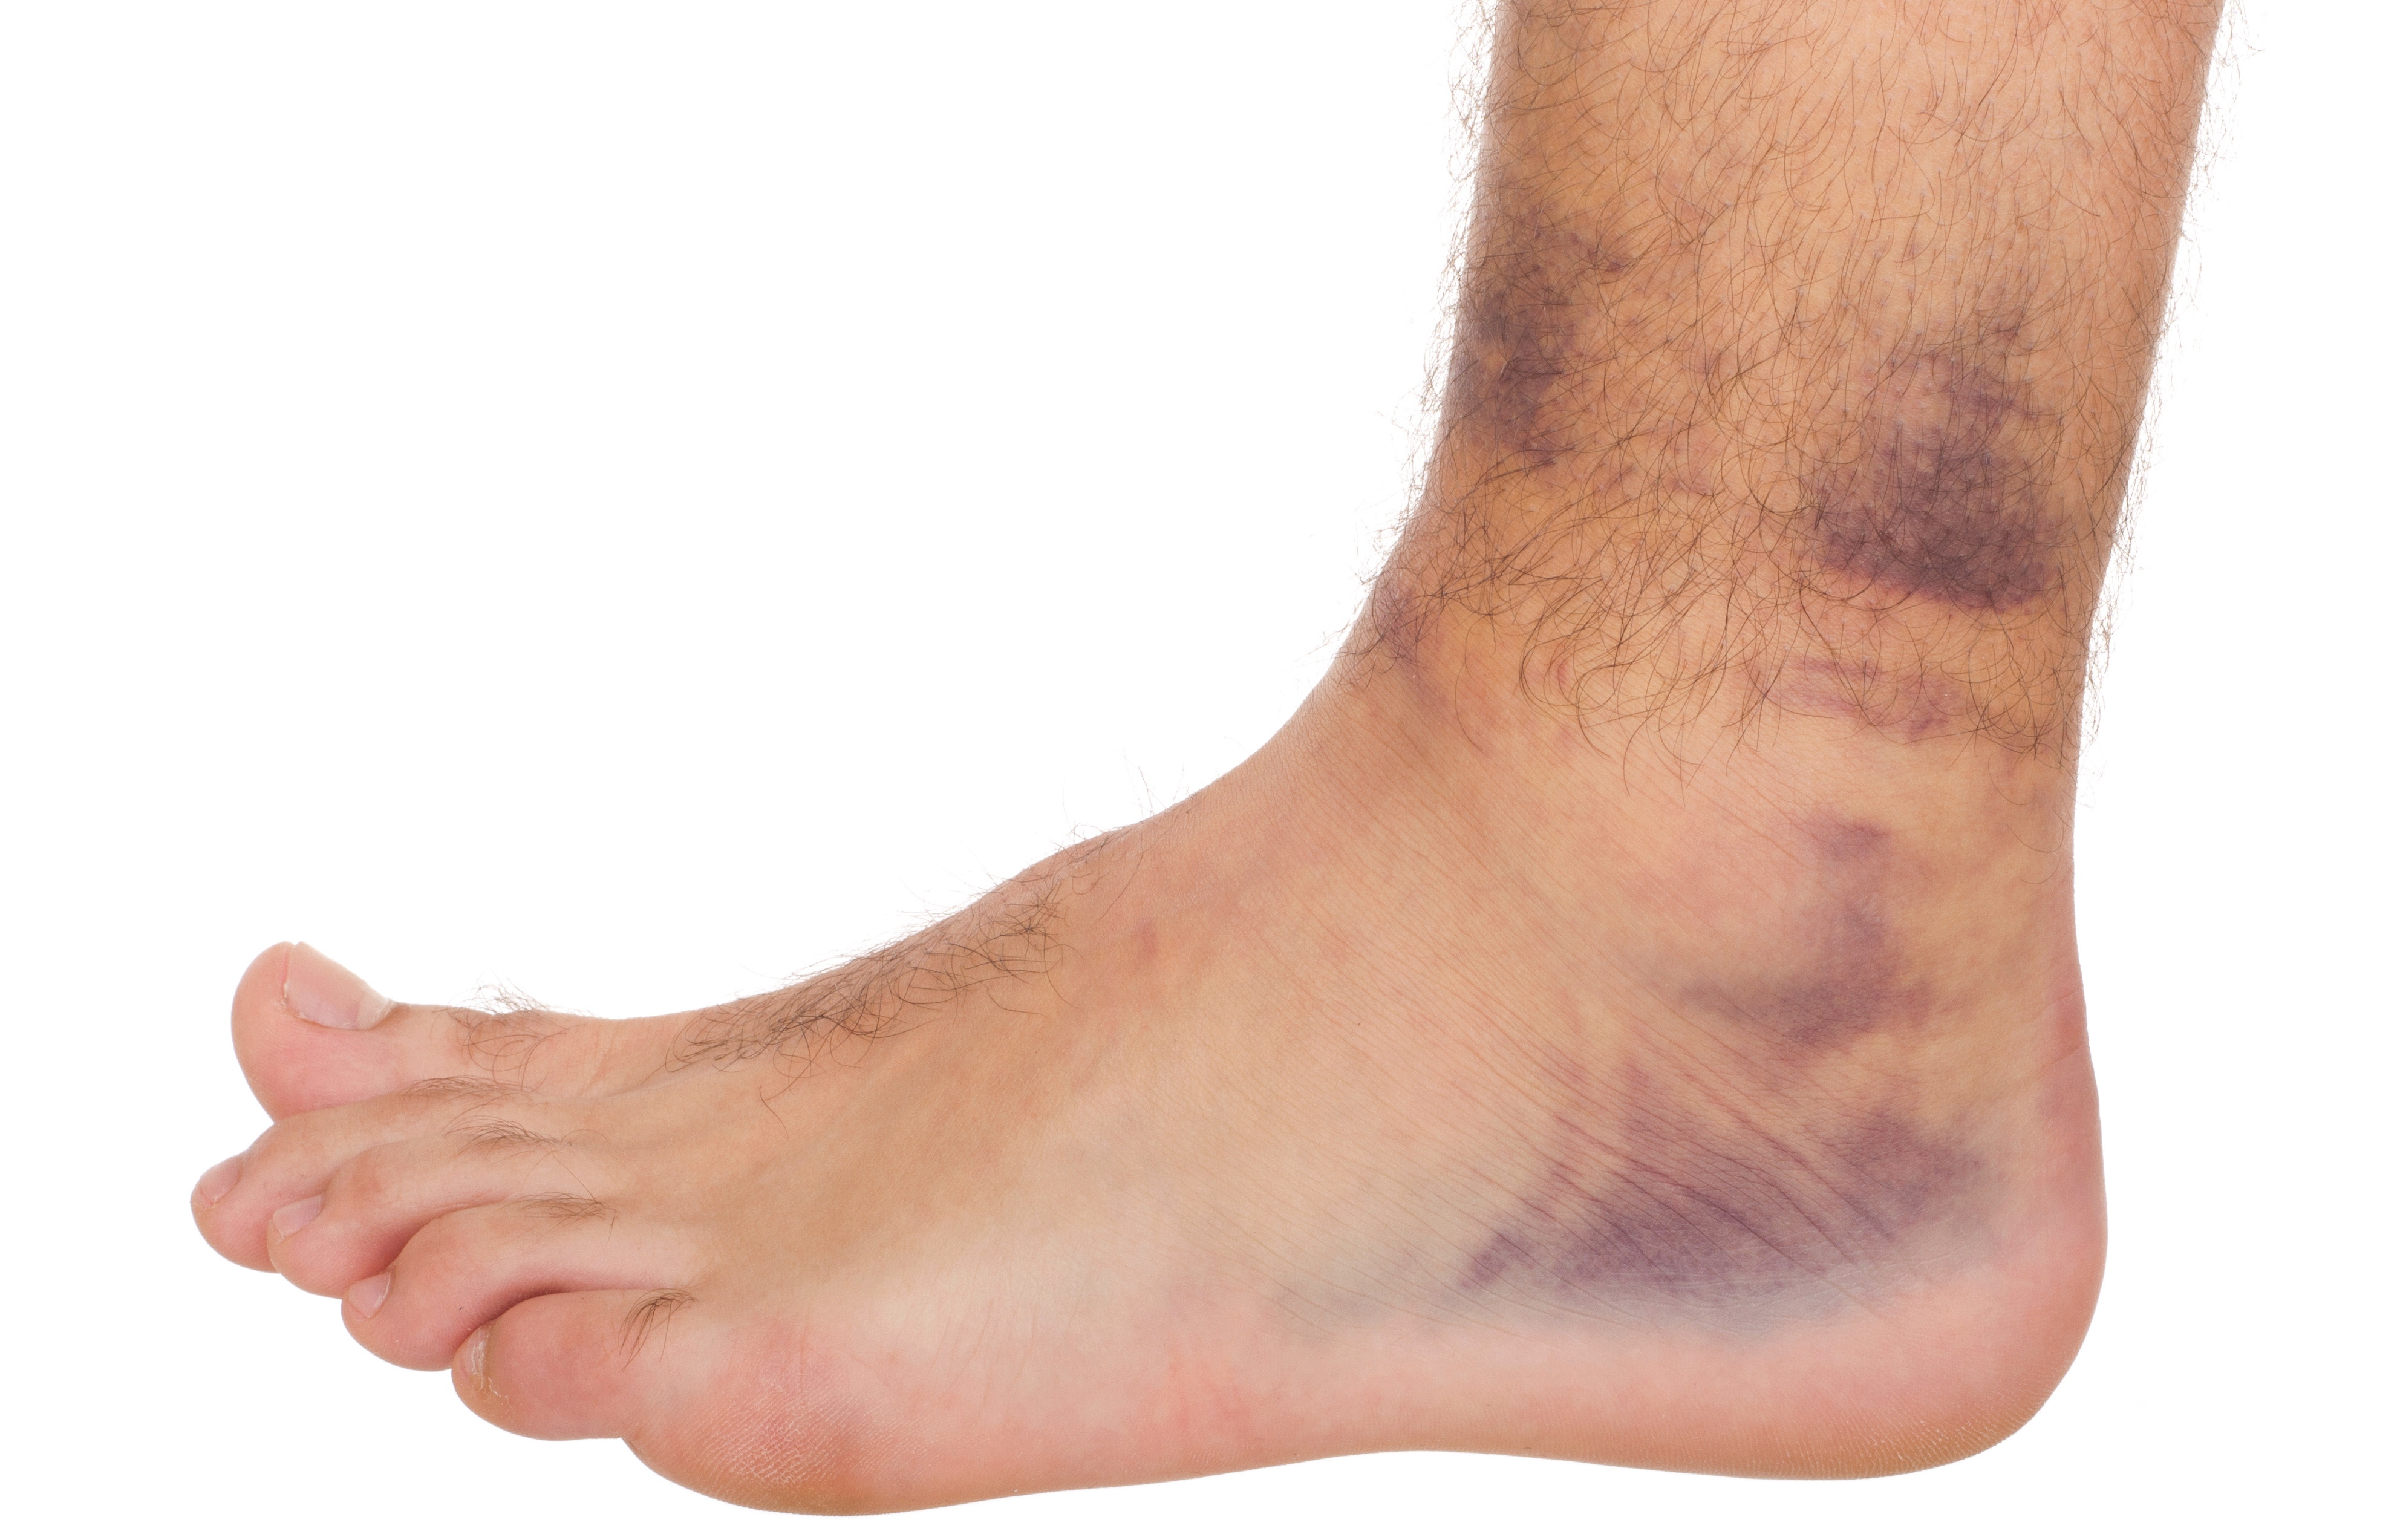 How a Diabetic Should Treat a Sprained Ankle